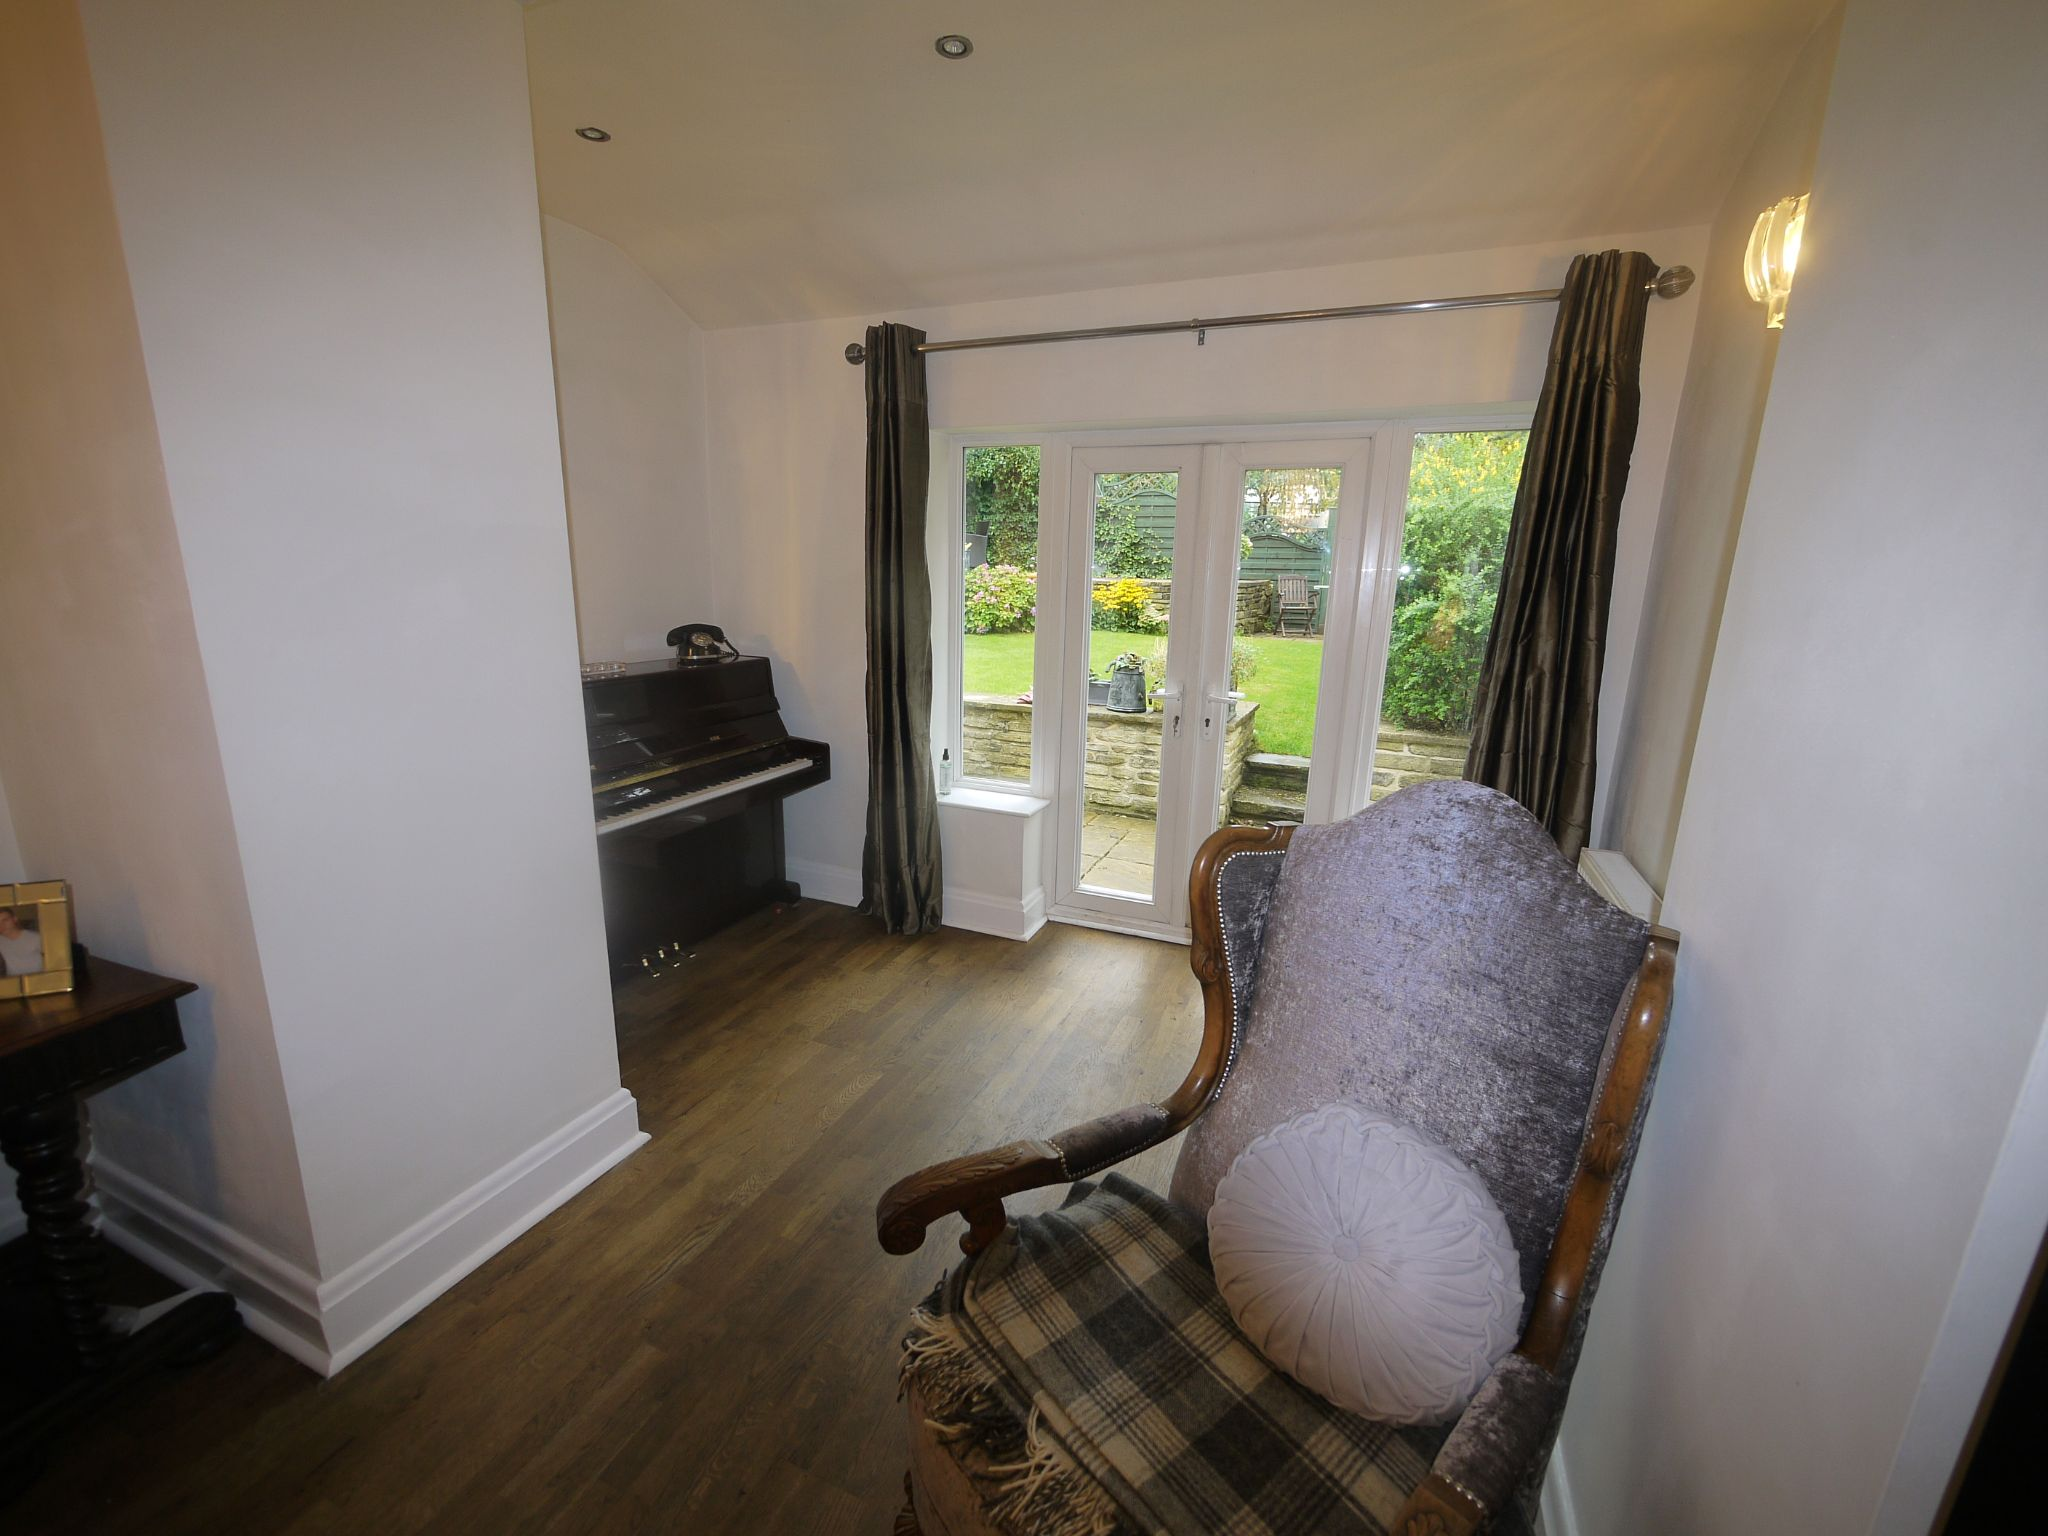 4 bedroom semi-detached house SSTC in Halifax - Lounge 2.